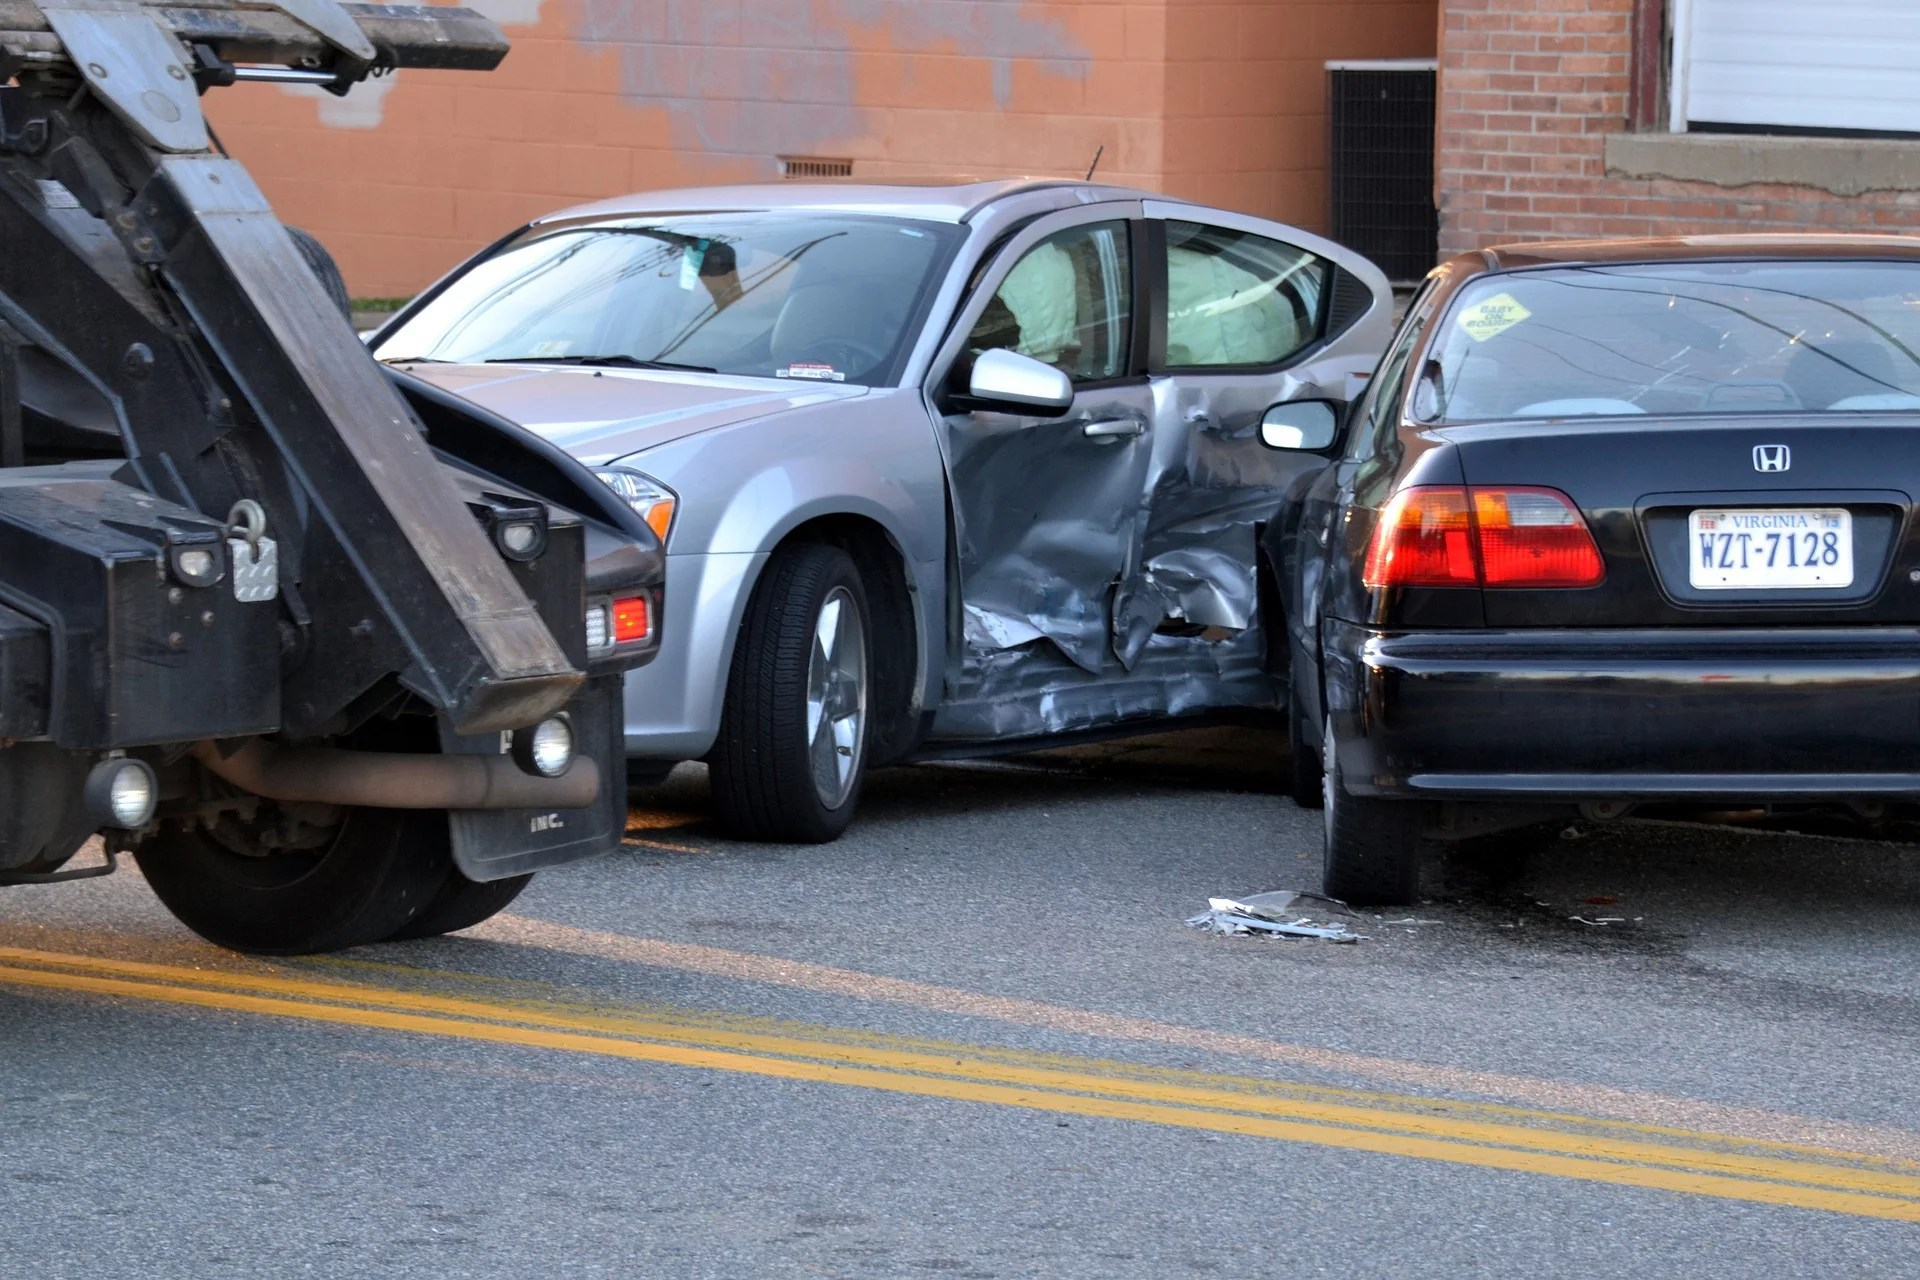 Personal Injury Claims Automobile, Motorcycle, Truck Accidents